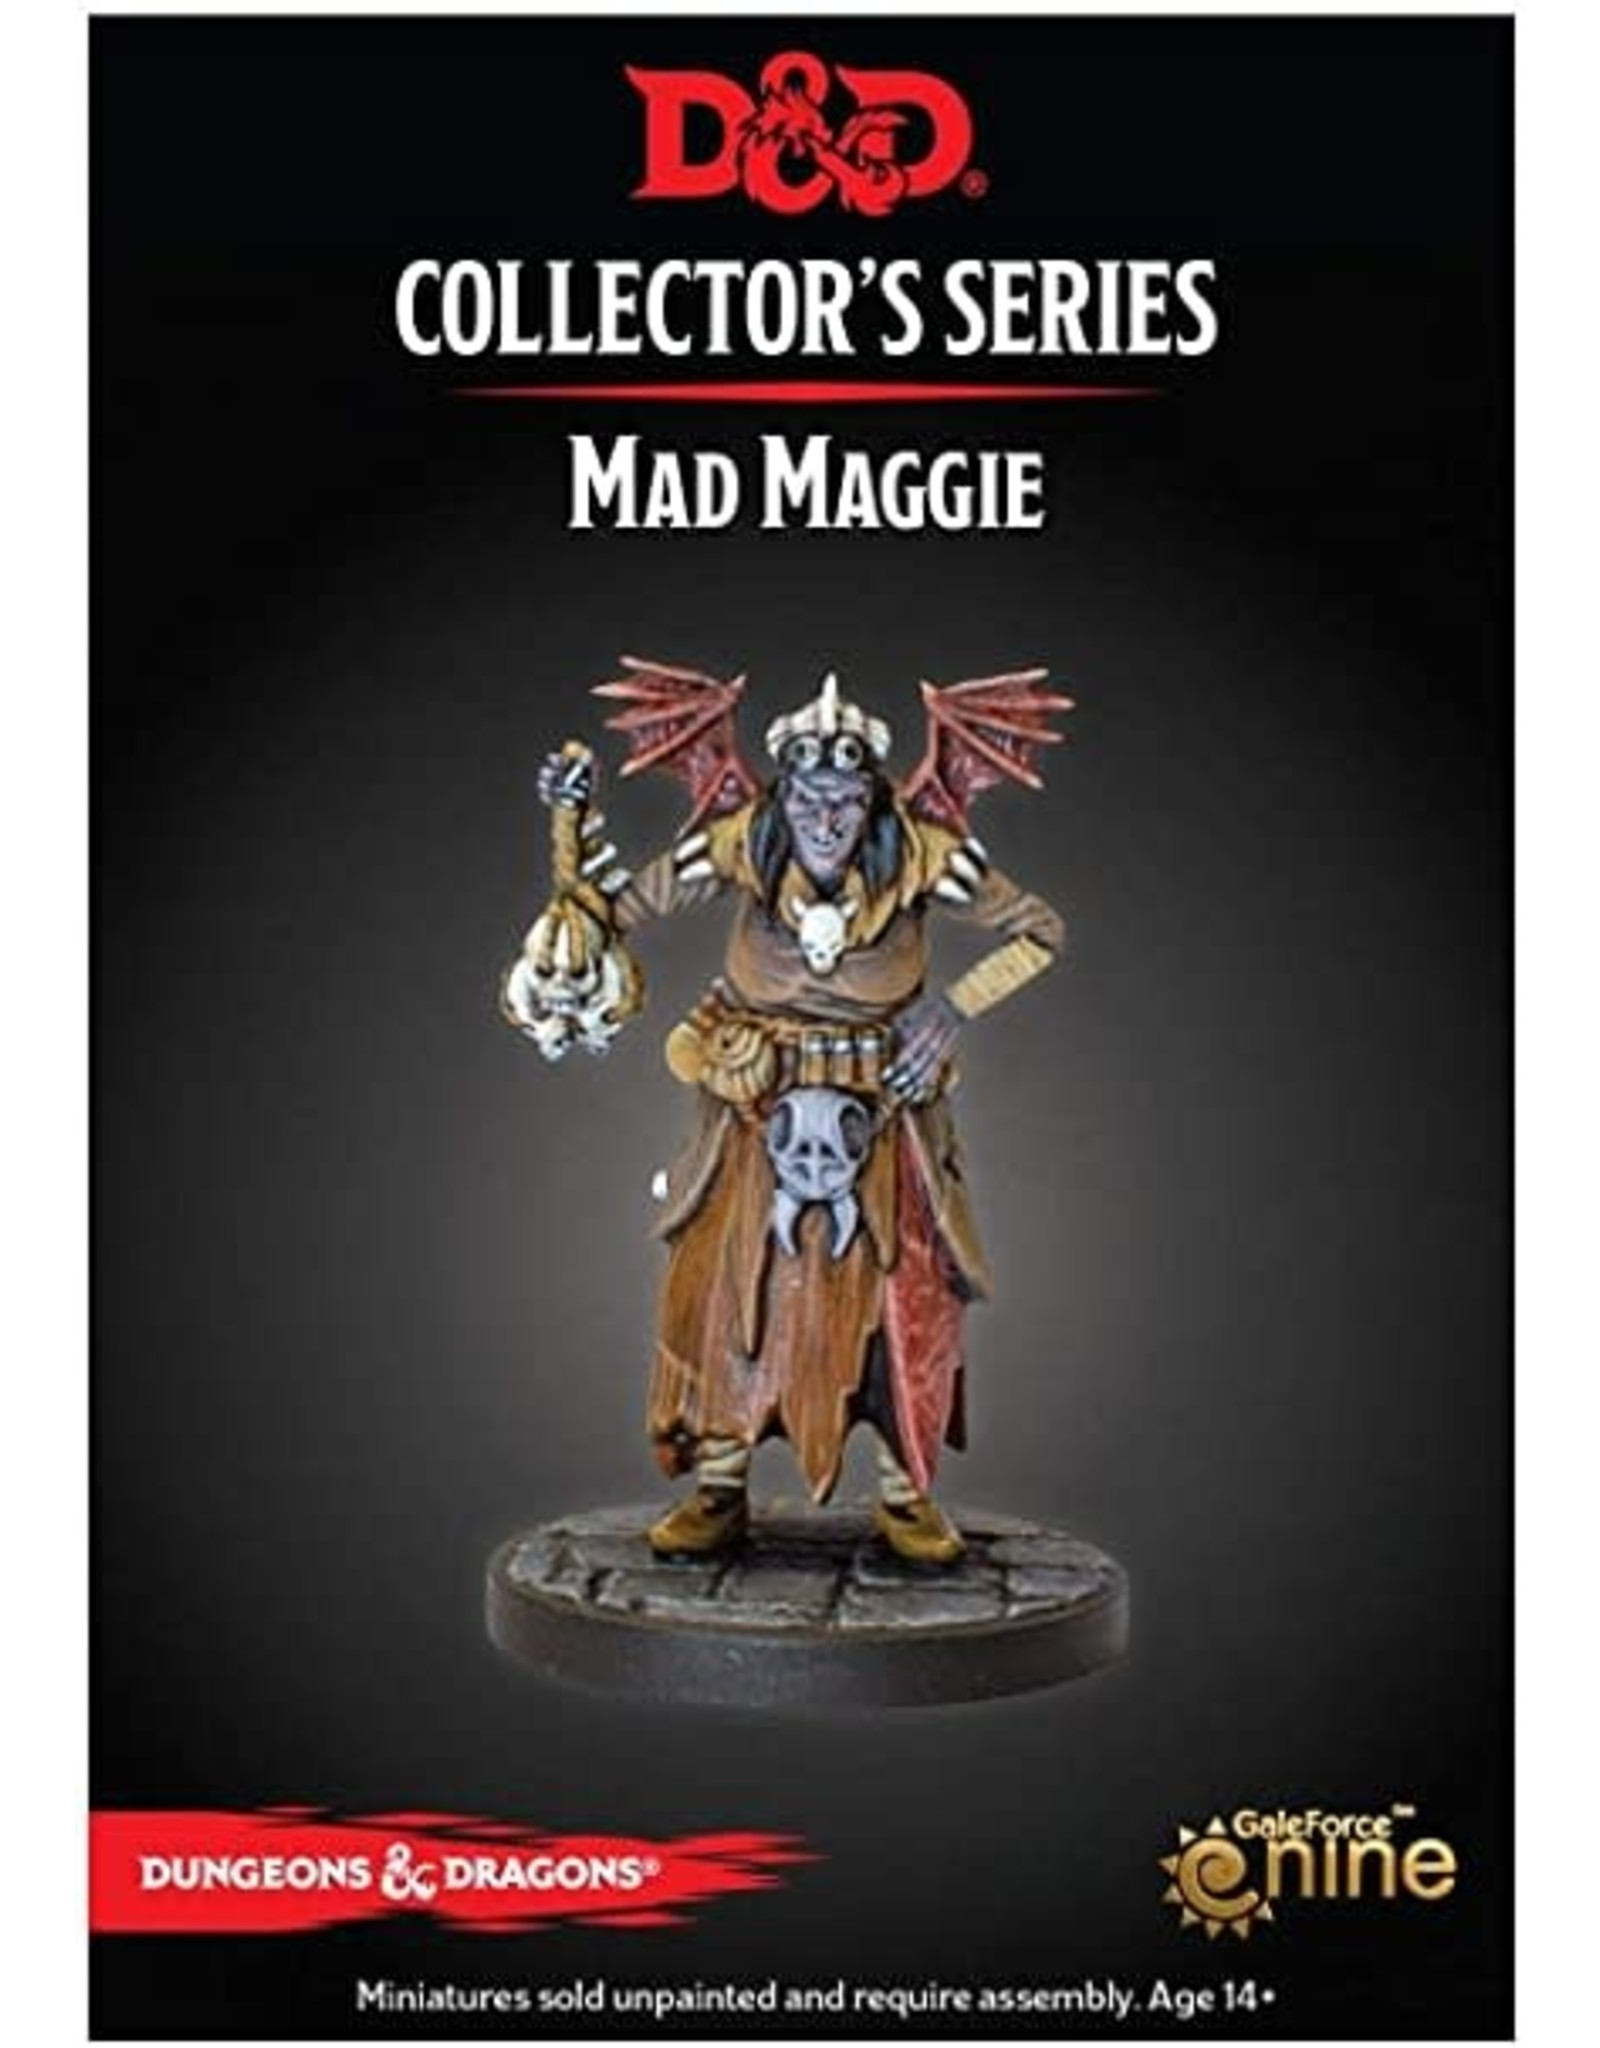 GaleForce9 GF9: D&D Collector's Series: Mad Maggie